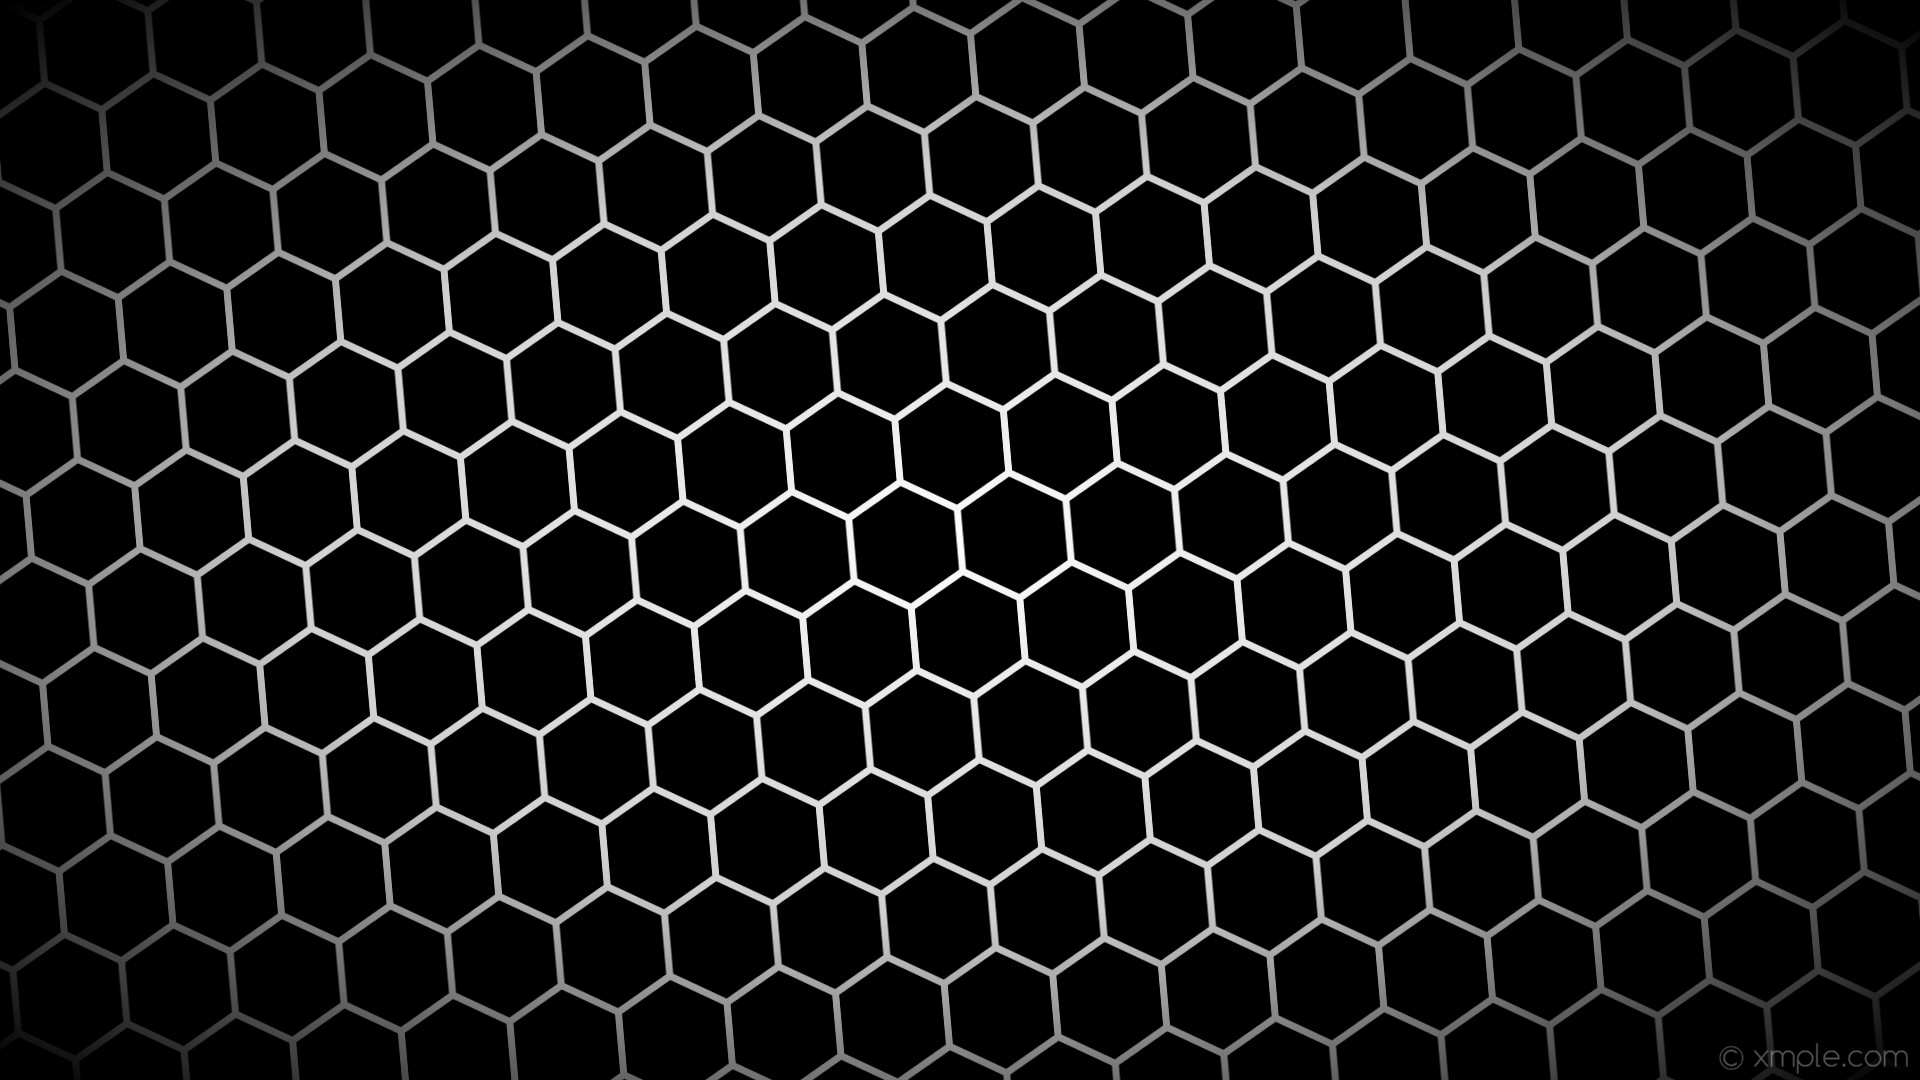 wallpaper black hexagon white gradient glow grey light gray #000000 #ffffff  #d3d3d3 diagonal